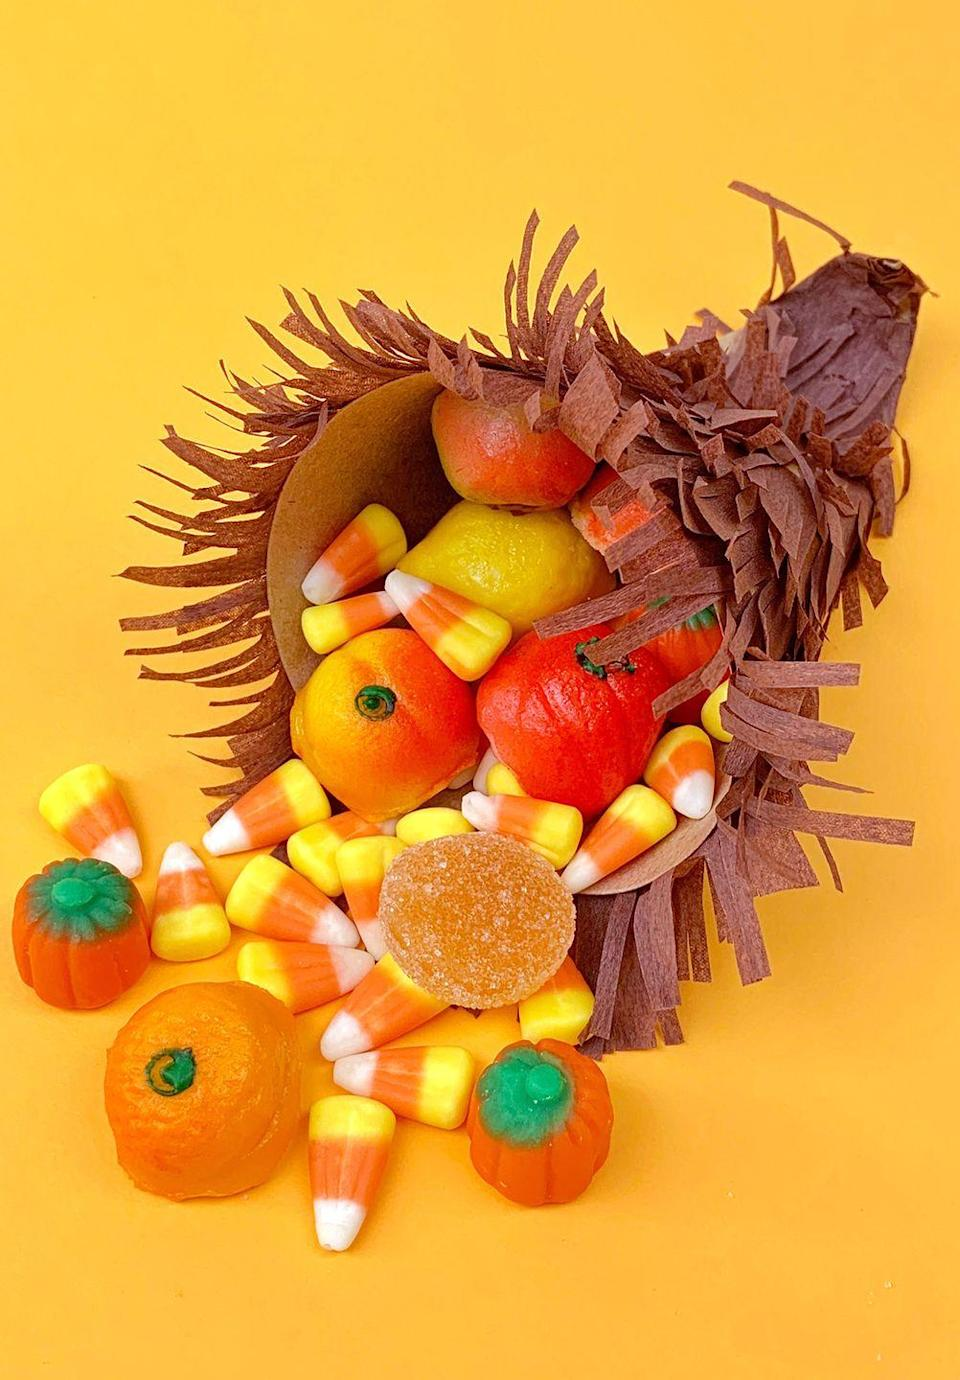 """<p>This horn of plenty is fun for kids of all ages to create, and when stuffed with autumn-themed sweets like candy corn and pumpkins it will make for a charming table centerpiece.</p><p><strong>Get the tutorial at <a href=""""https://www.happinessishomemade.net/candy-cornucopia-thanksgiving-craft/"""" rel=""""nofollow noopener"""" target=""""_blank"""" data-ylk=""""slk:Happiness is Homemade"""" class=""""link rapid-noclick-resp"""">Happiness is Homemade</a>.</strong></p><p><a class=""""link rapid-noclick-resp"""" href=""""https://www.amazon.com/Streamer-Decorations-Birthday-Wedding-Festivals/dp/B07H9YRRN1/ref=as_li_ss_tl?tag=syn-yahoo-20&ascsubtag=%5Bartid%7C10050.g.1201%5Bsrc%7Cyahoo-us"""" rel=""""nofollow noopener"""" target=""""_blank"""" data-ylk=""""slk:SHOP BROWN CREPE PAPER STREAMERS"""">SHOP BROWN CREPE PAPER STREAMERS</a><br></p>"""